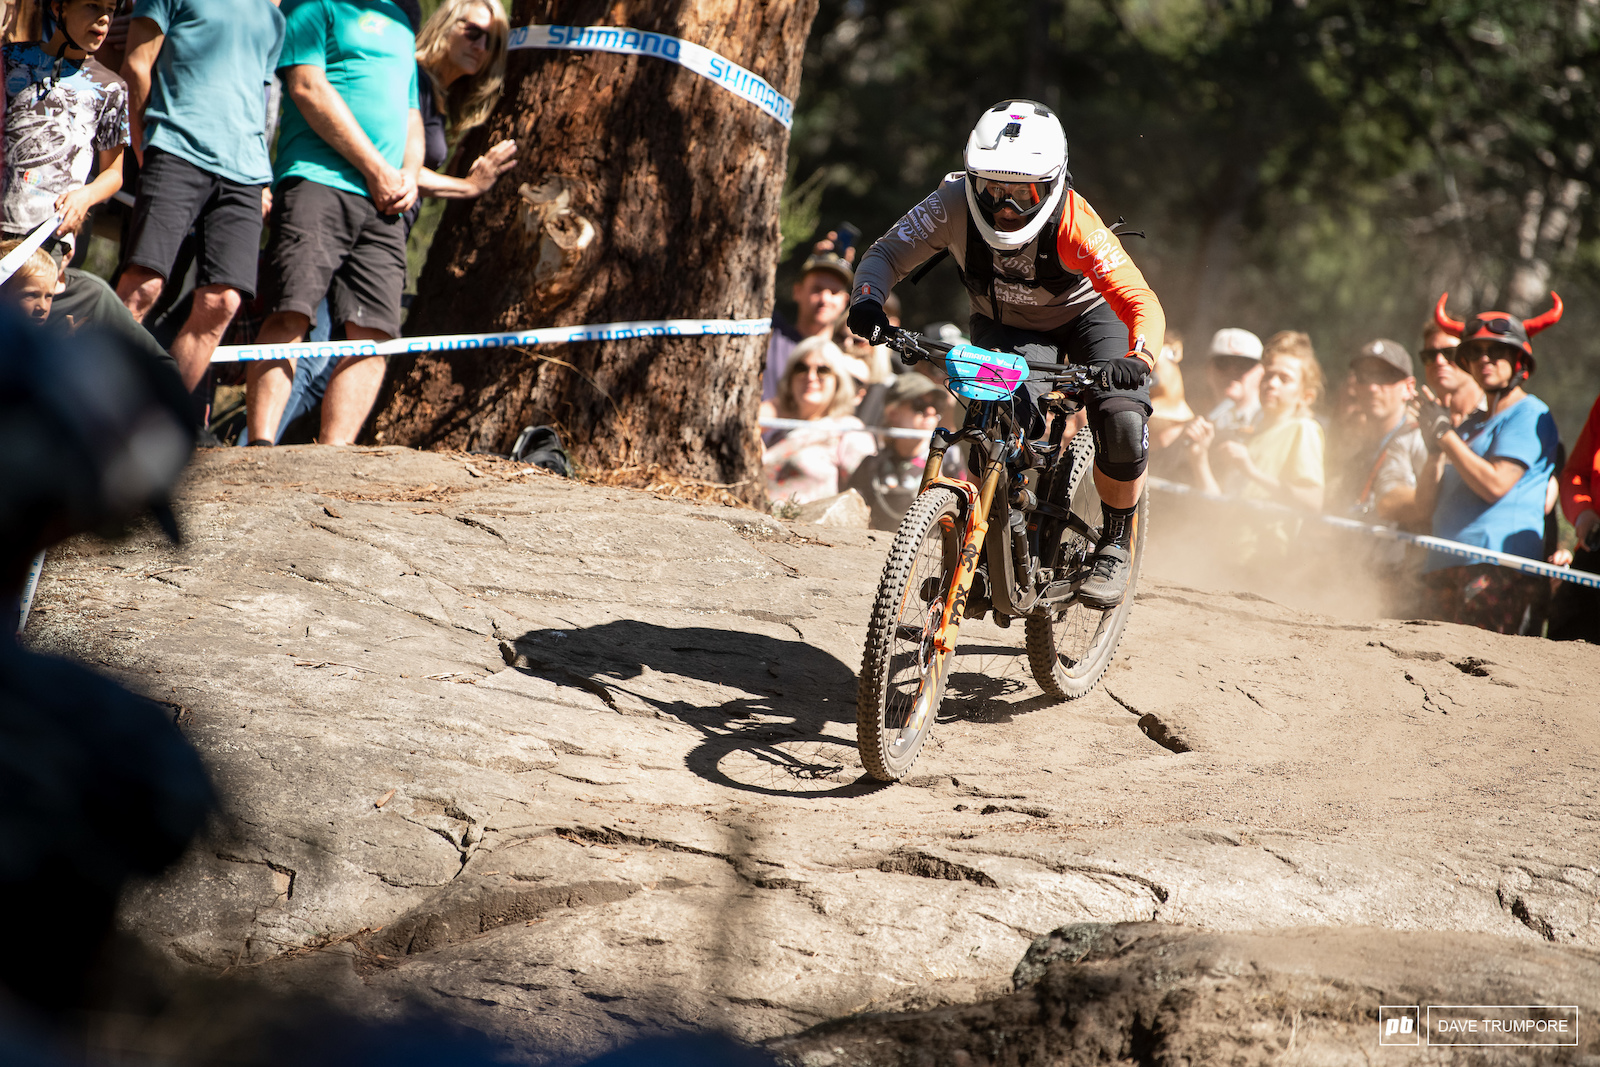 Bex Baraona missed out on the podium this week but stall managed to finish in the top 5.